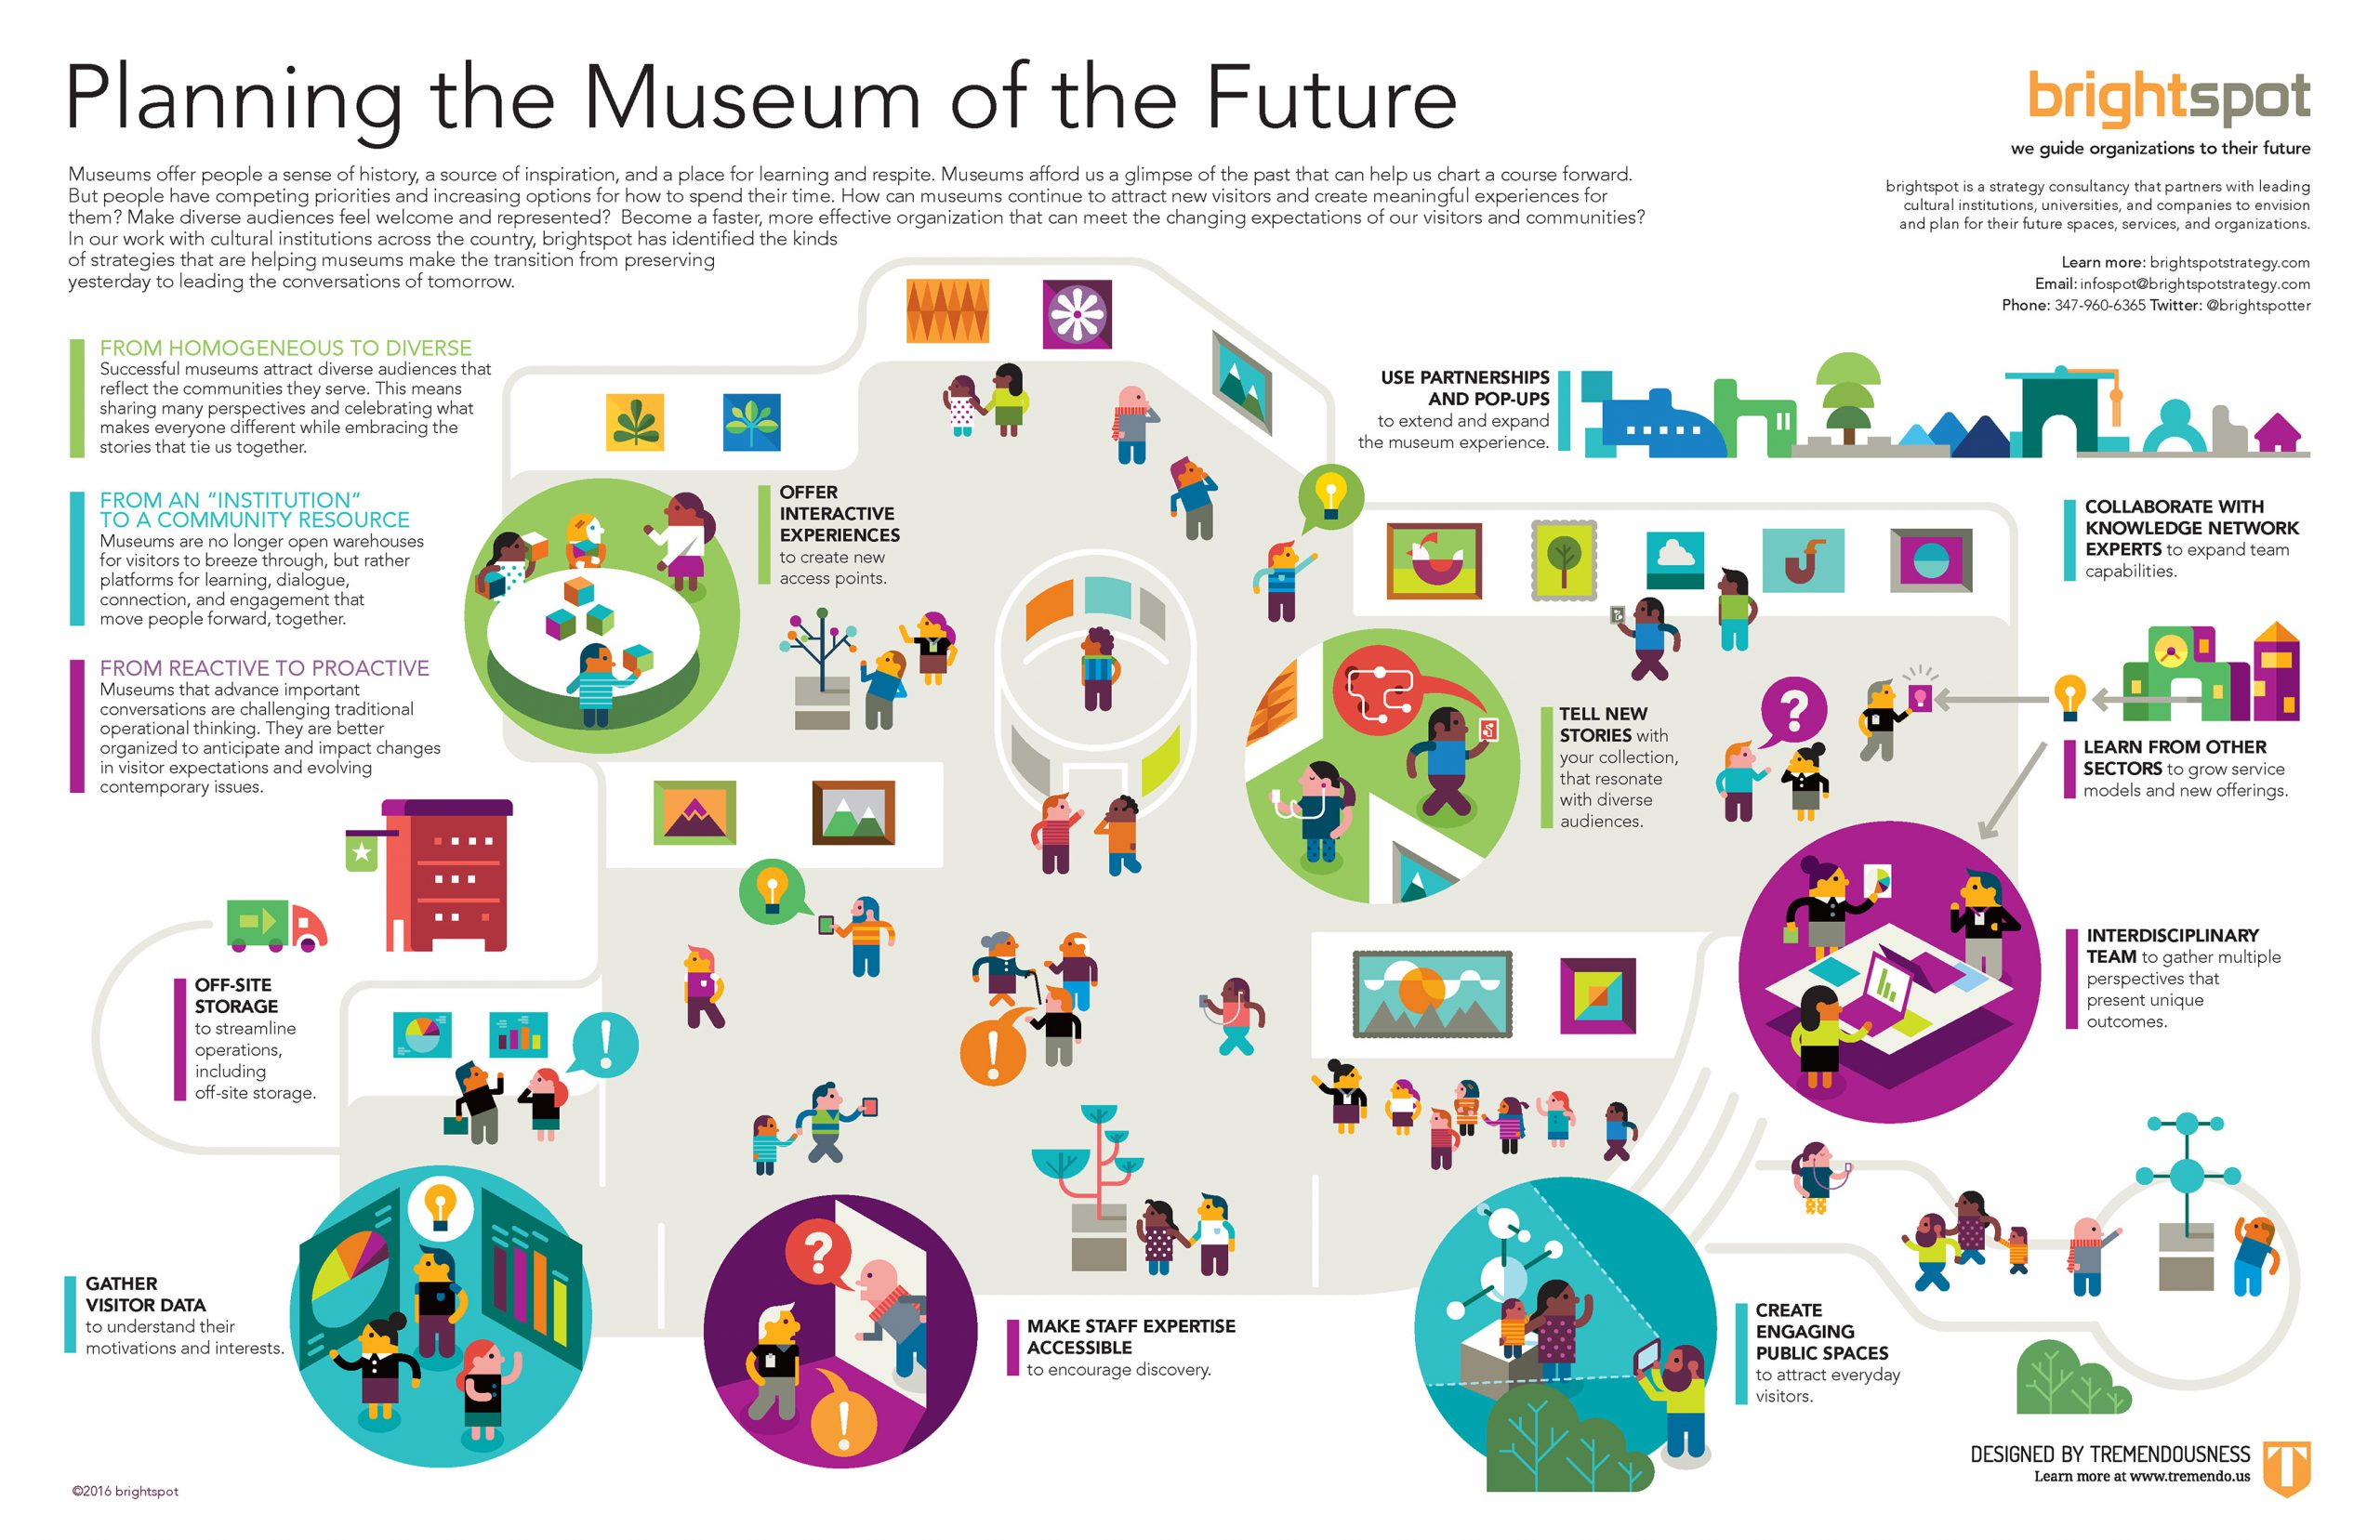 brightspot - Planning the Museum of the Future